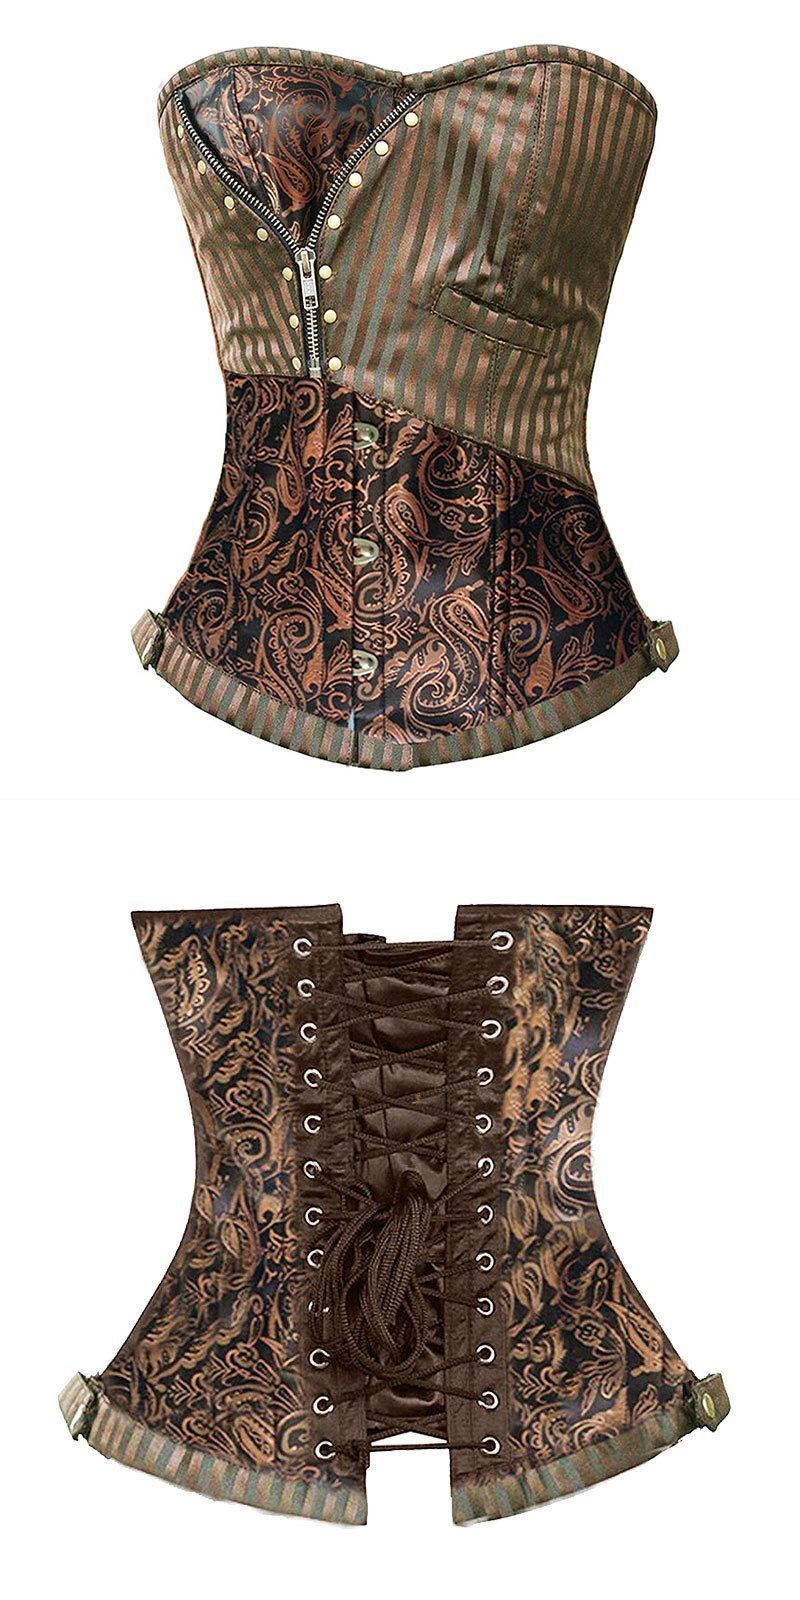 3541e34c8c Helloween costumes sexy corsets and bustiers steampunk corset brocade waist  cincher gothic corselet evening dress size s-6xl  women  bustiers      corsets ...